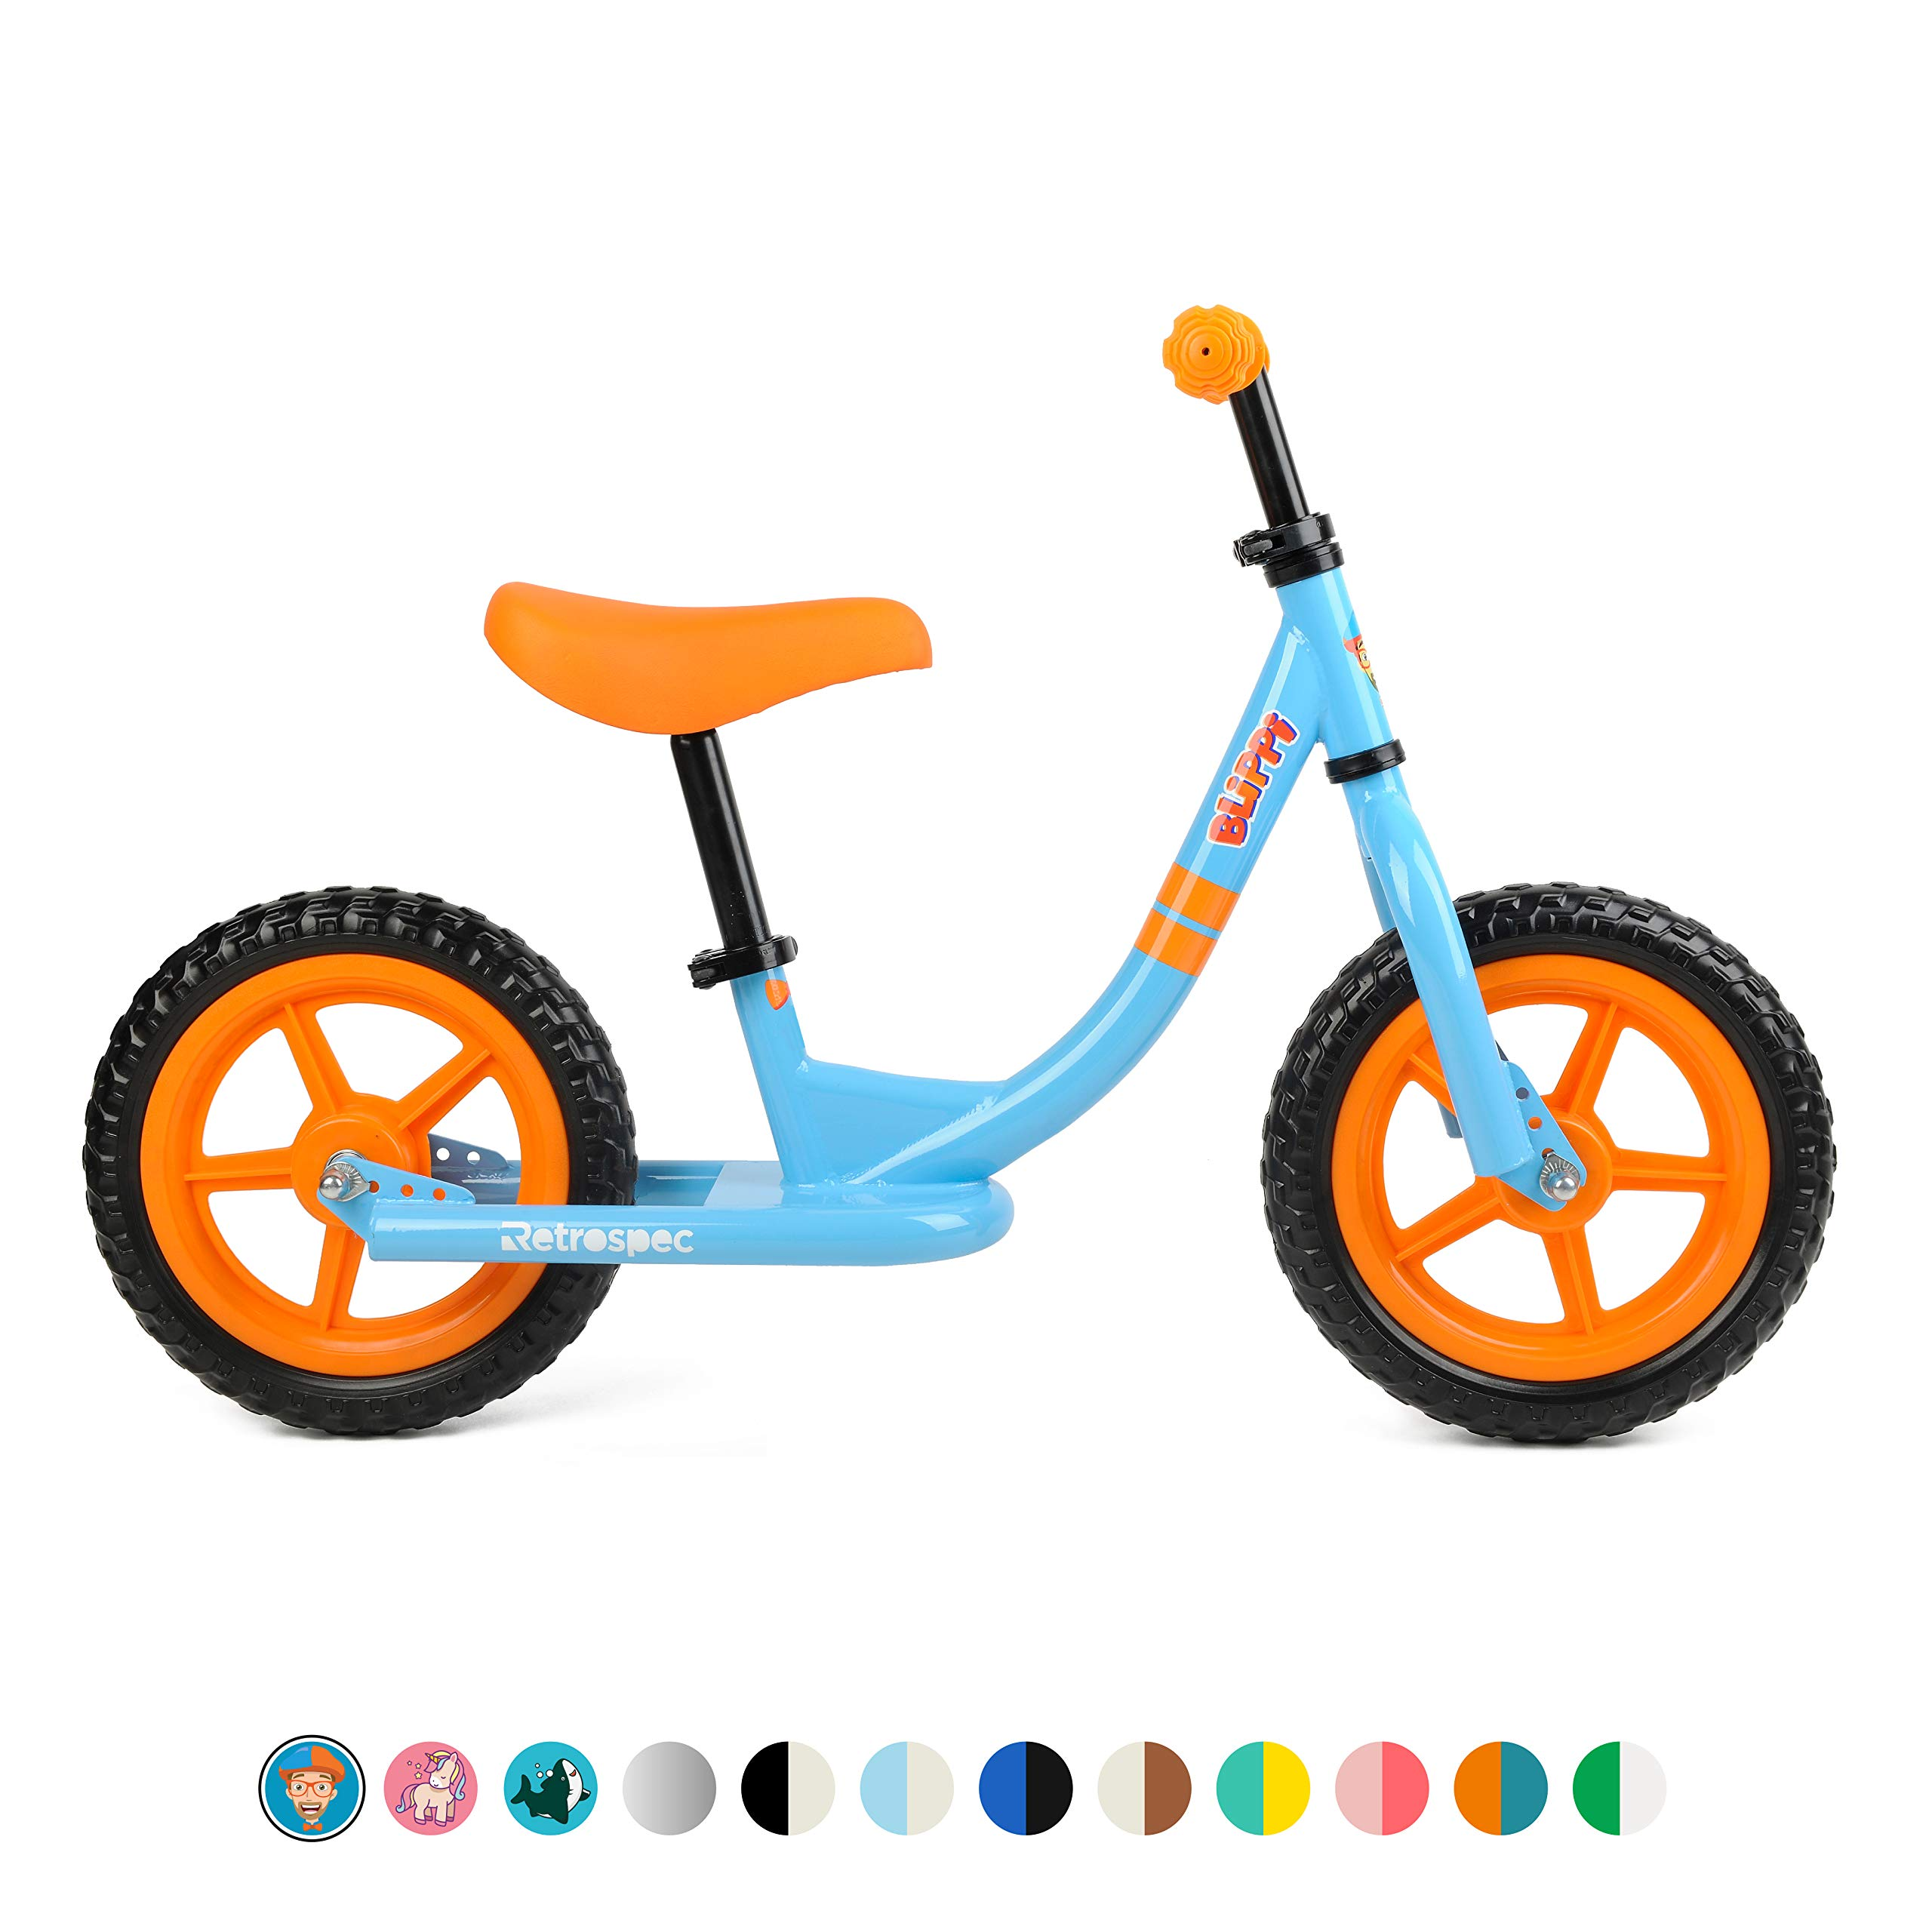 Retrospec Cub Kids Balance Bike No Pedal Bicycle